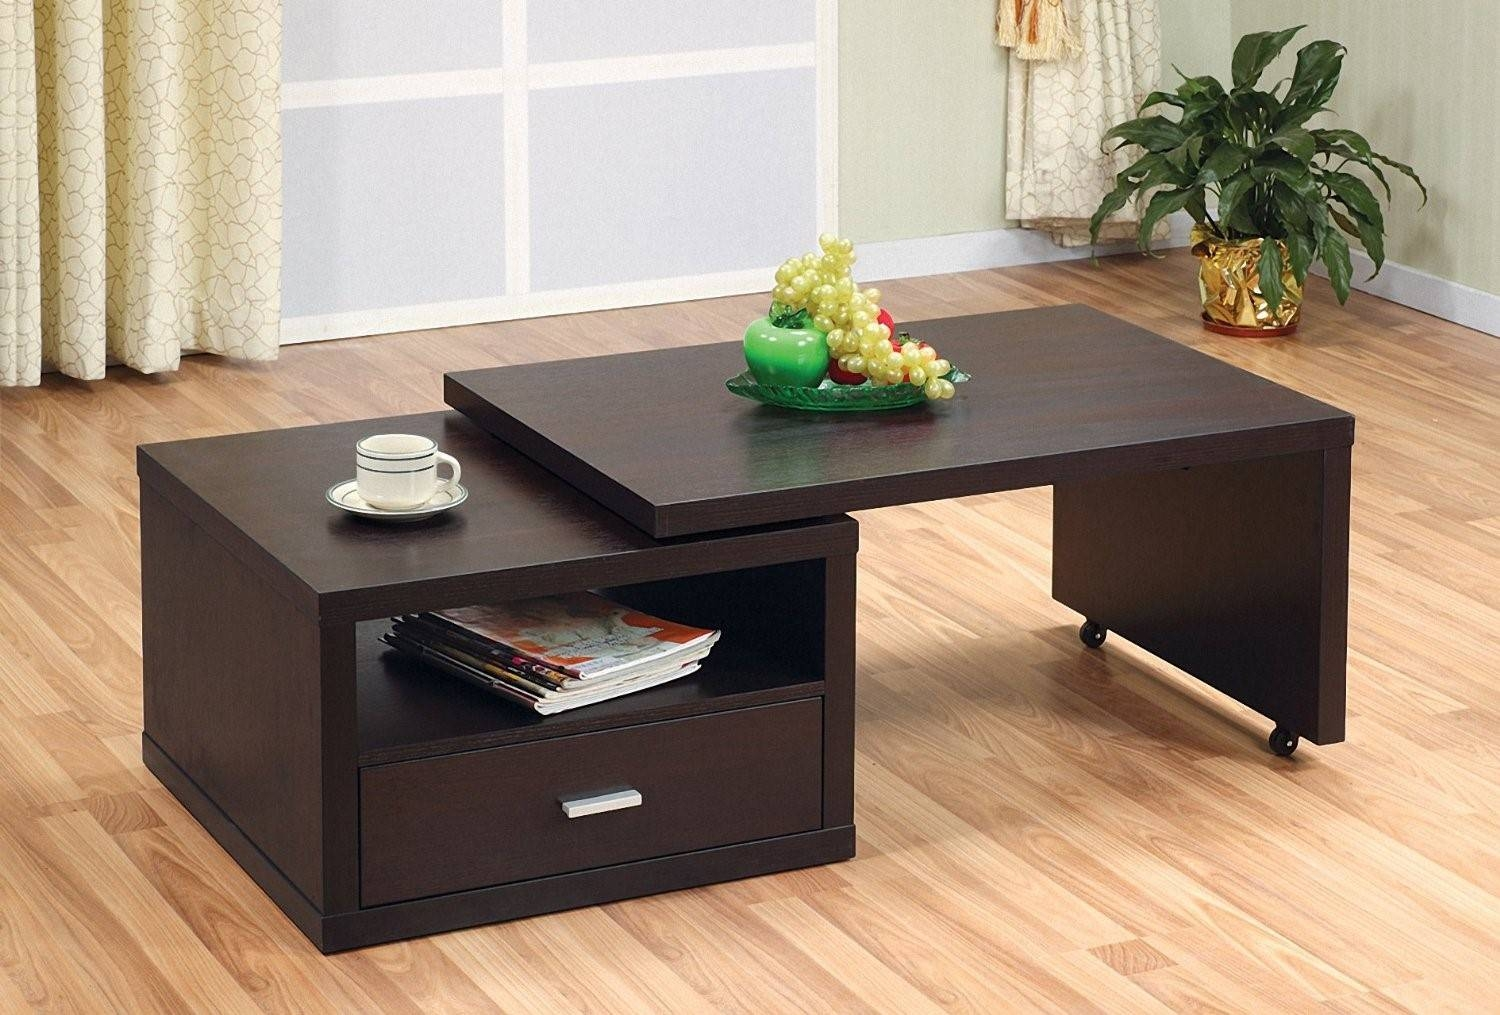 Furniture: Extendable Coffee Table Ideas Extendable Kitchen Table regarding Extendable Coffee Tables (Image 15 of 30)